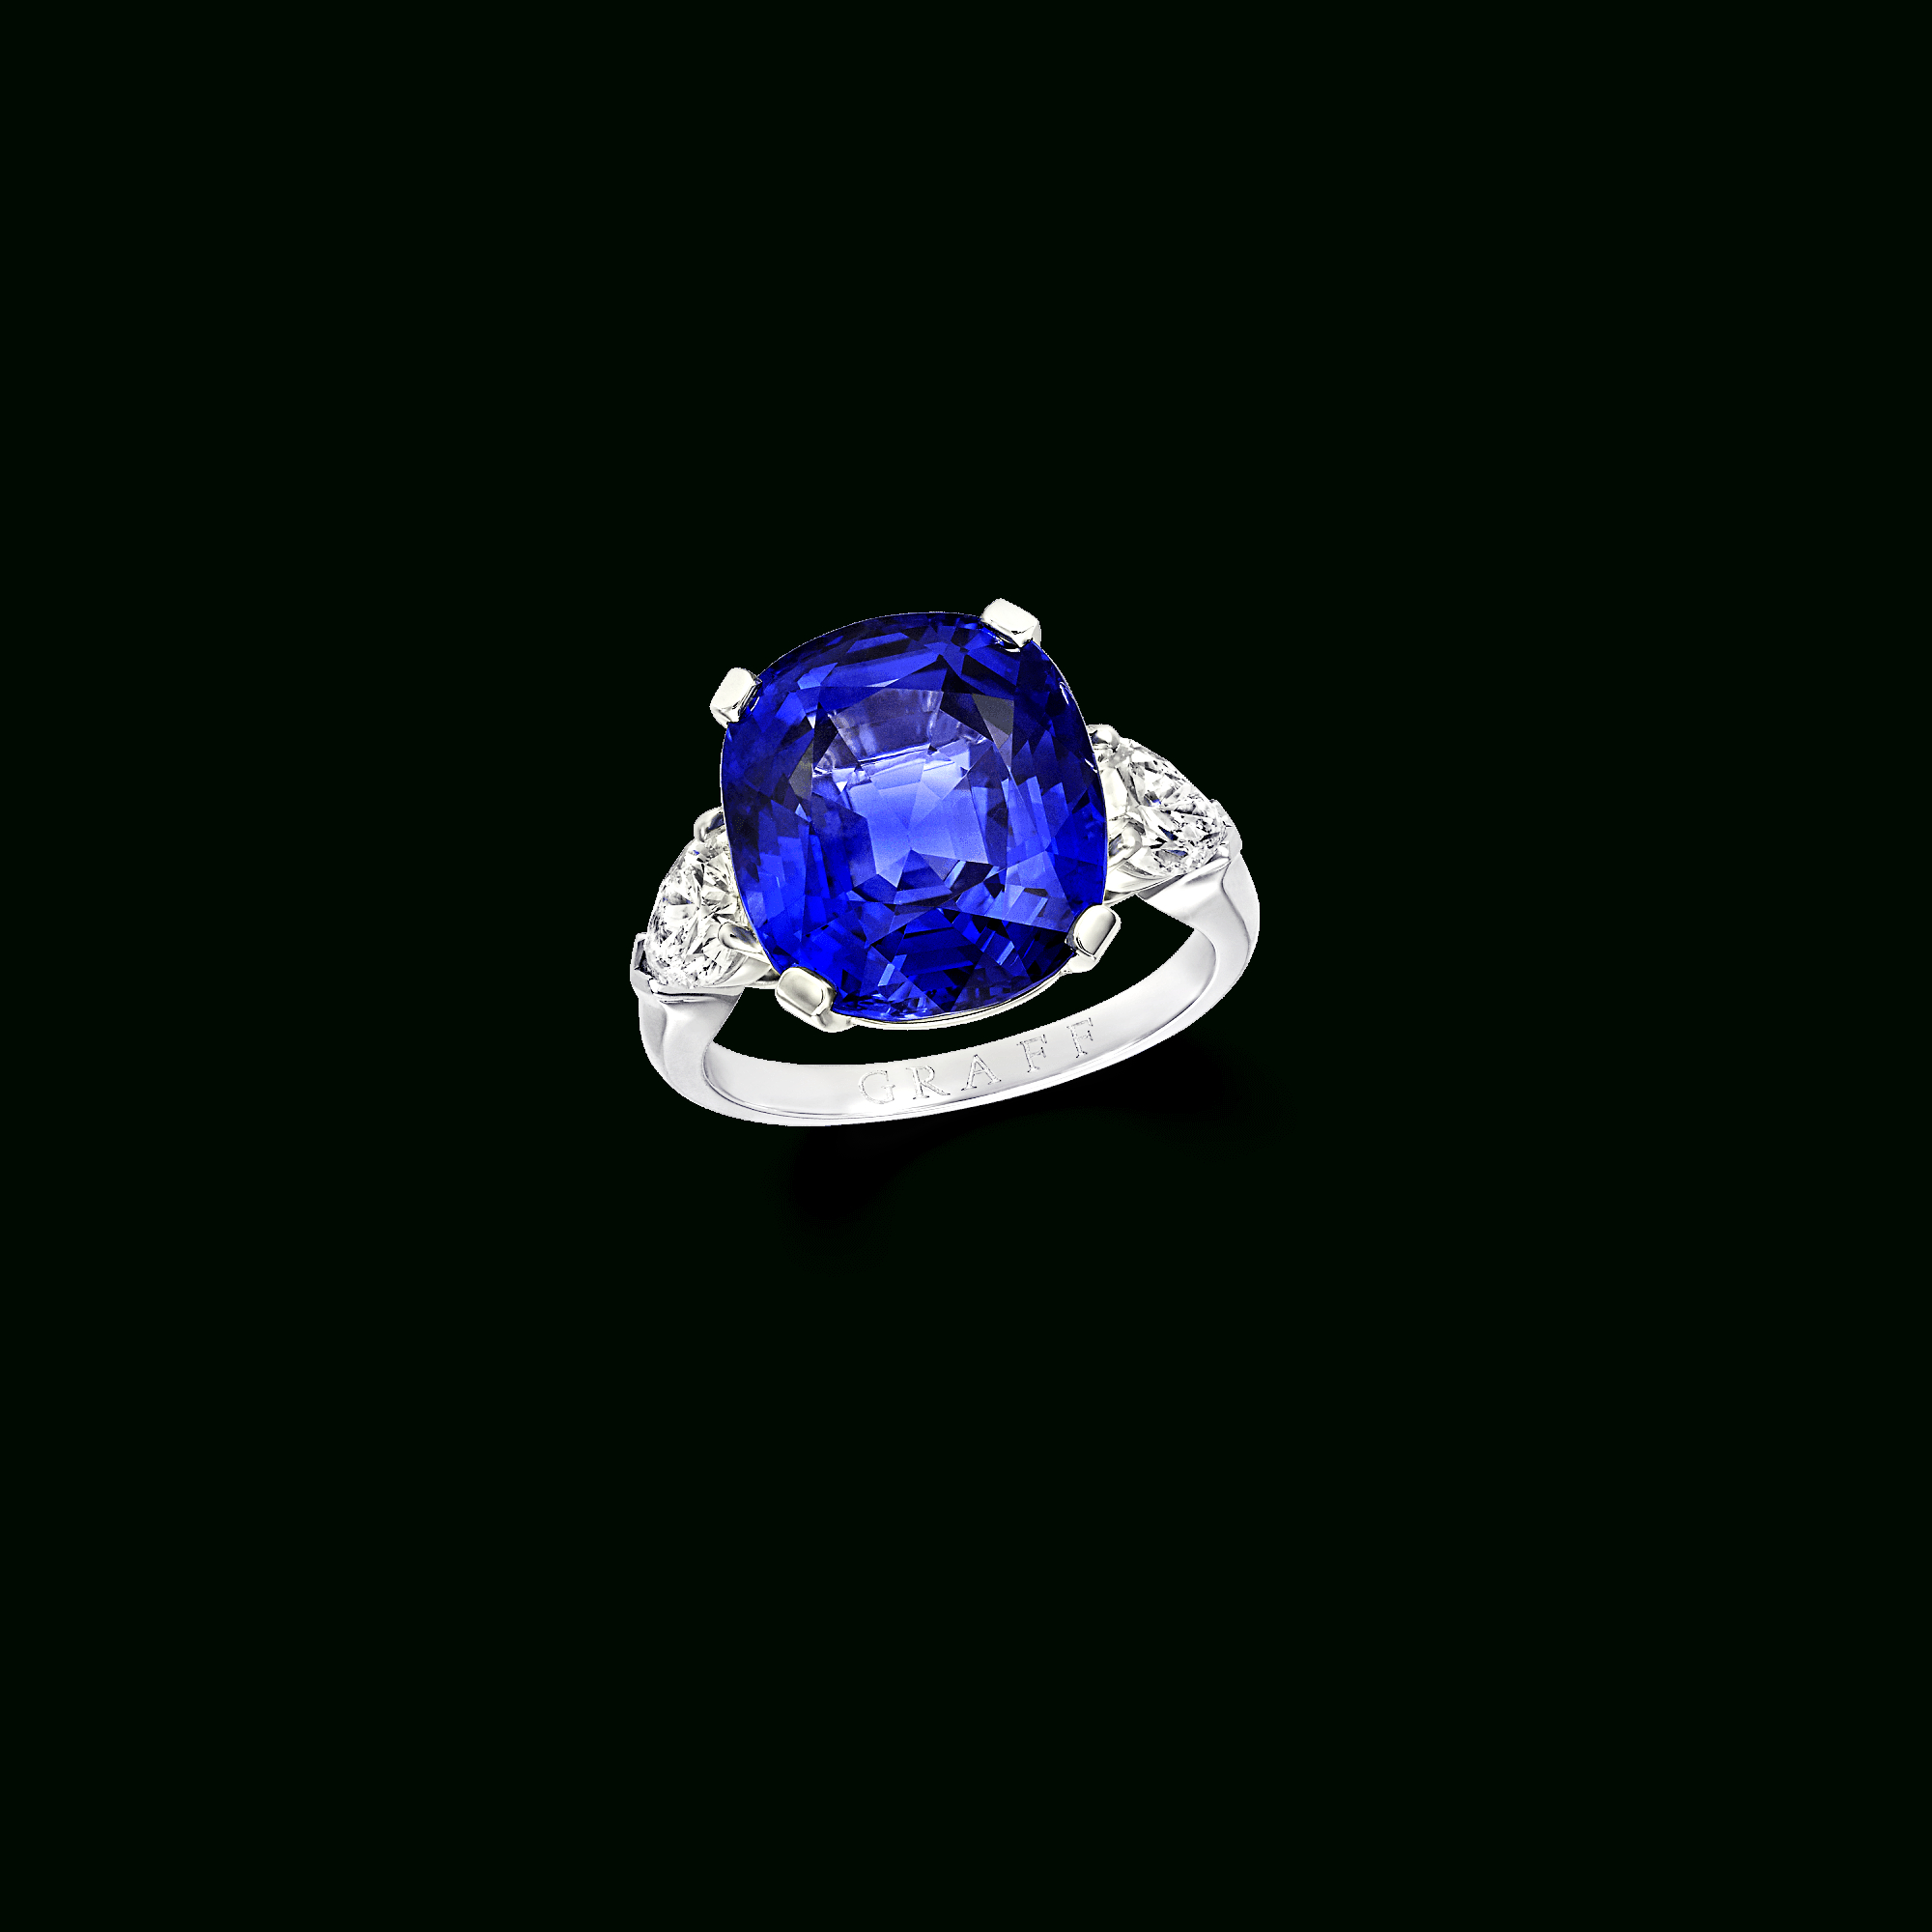 Cushion Cut Sapphire Ring | Classic Graff | Graff With Regard To Cushion Cut Sapphire Rings (View 15 of 25)